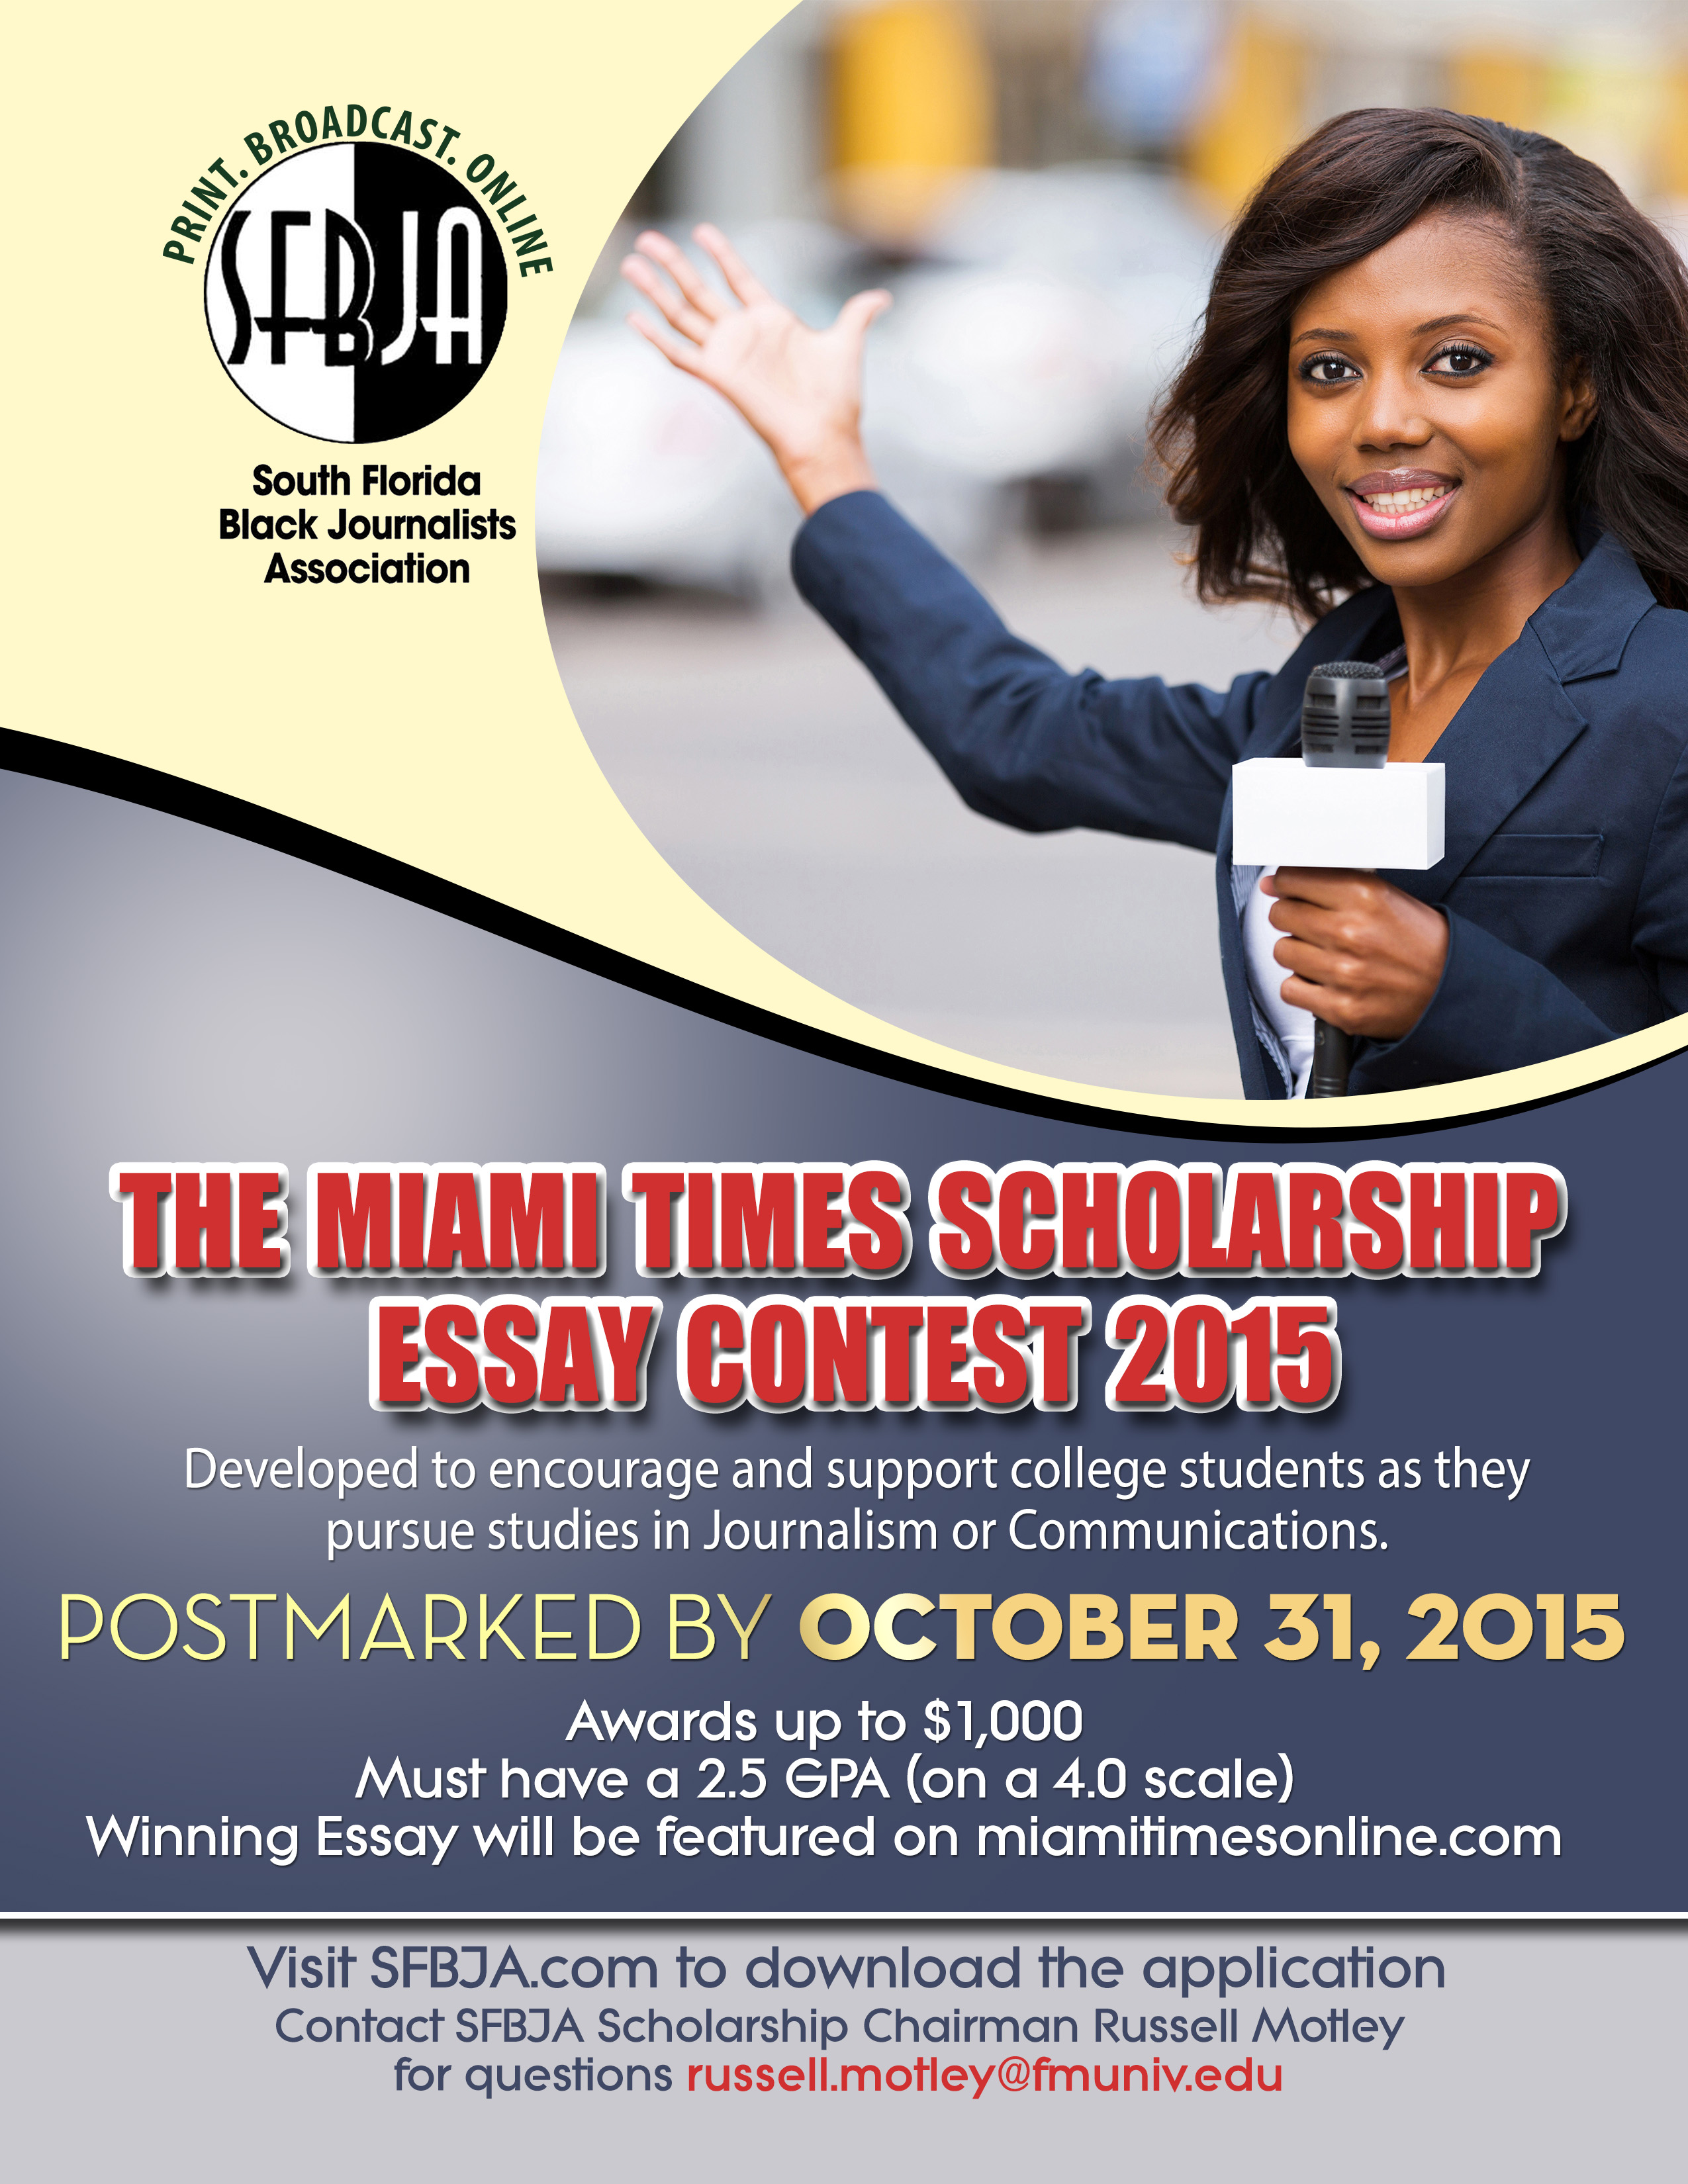 007 Essay Example Scholarship Contest Miami Times Flyer October31 Astounding Contests For High School Students 2019 Middle Full